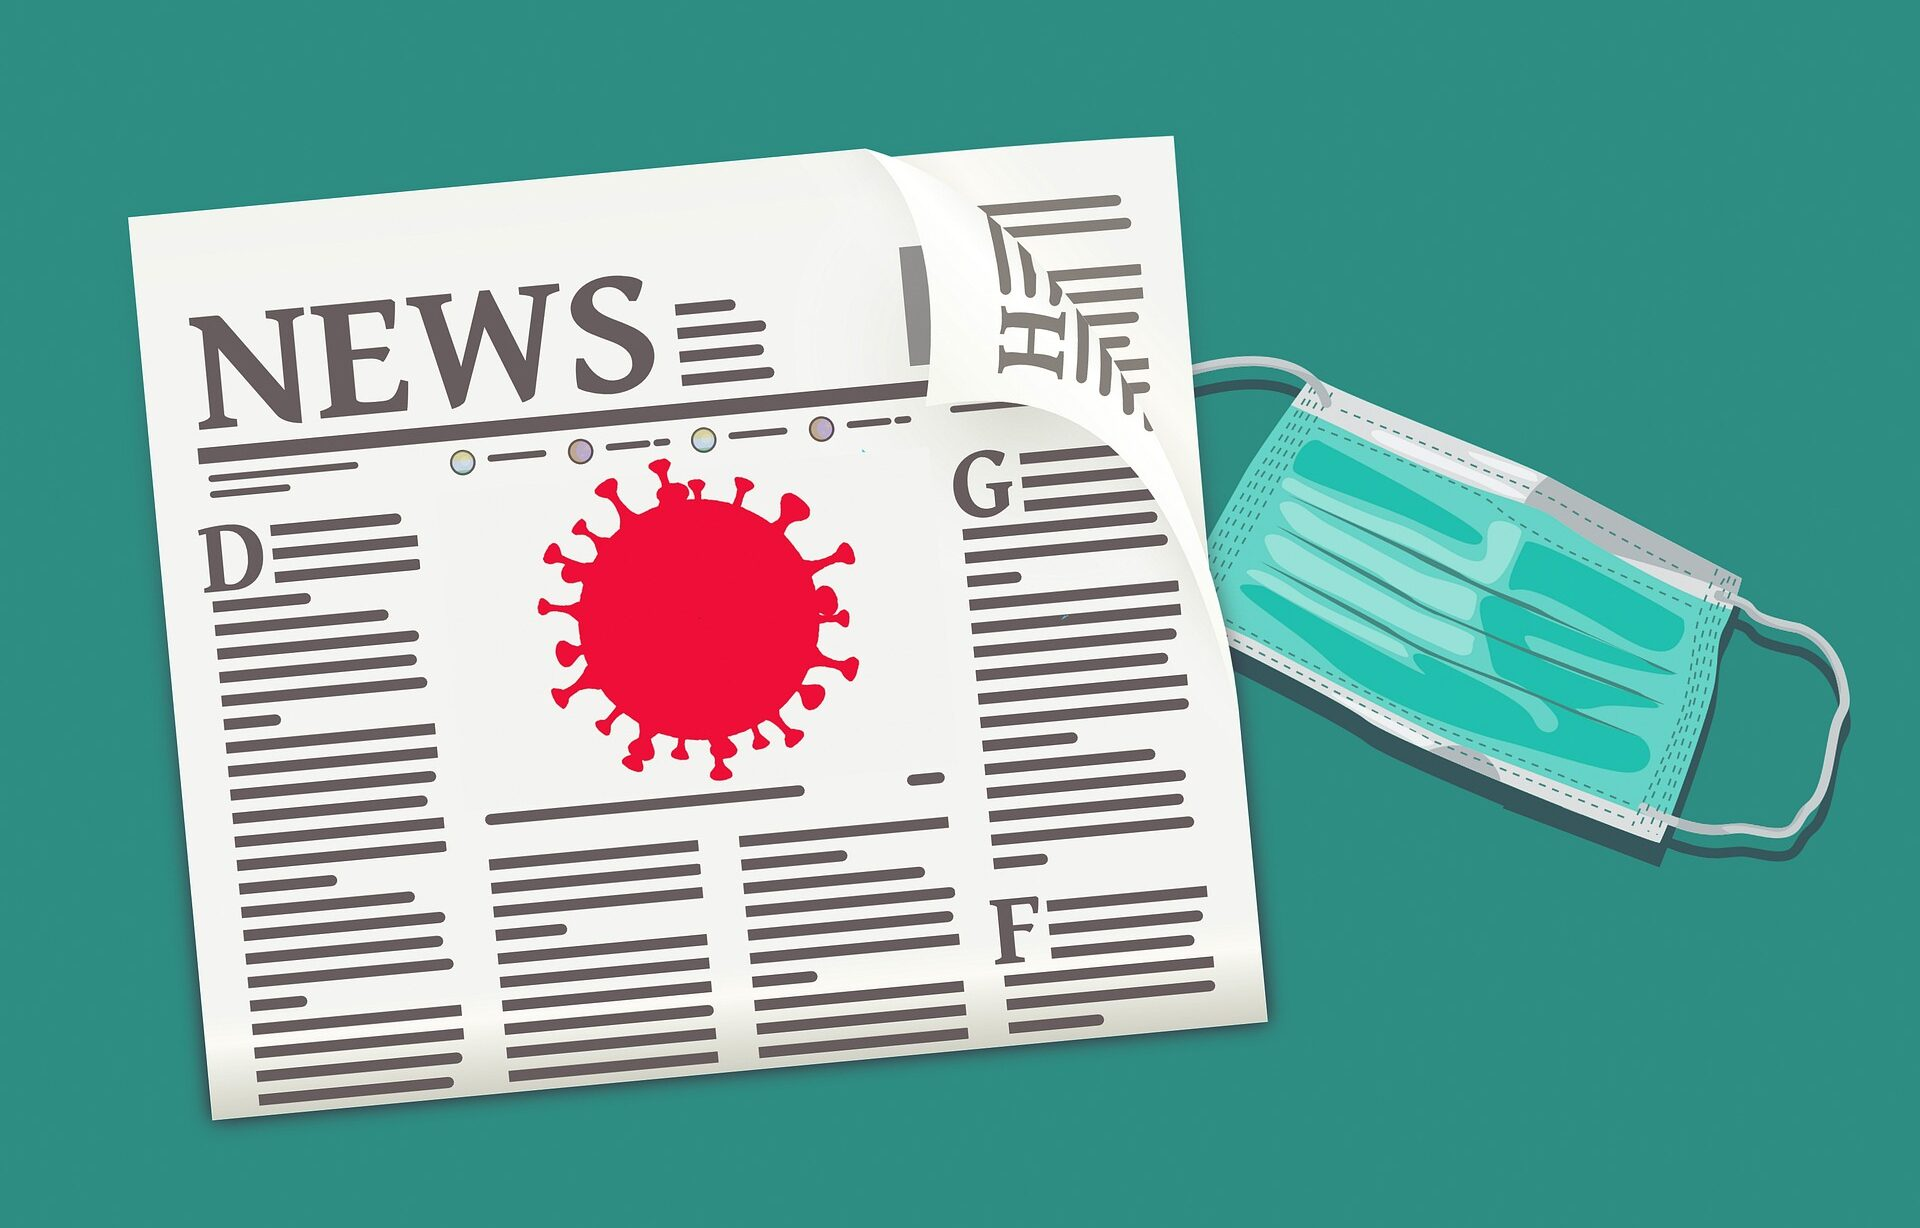 Journalism in the age of pandemics